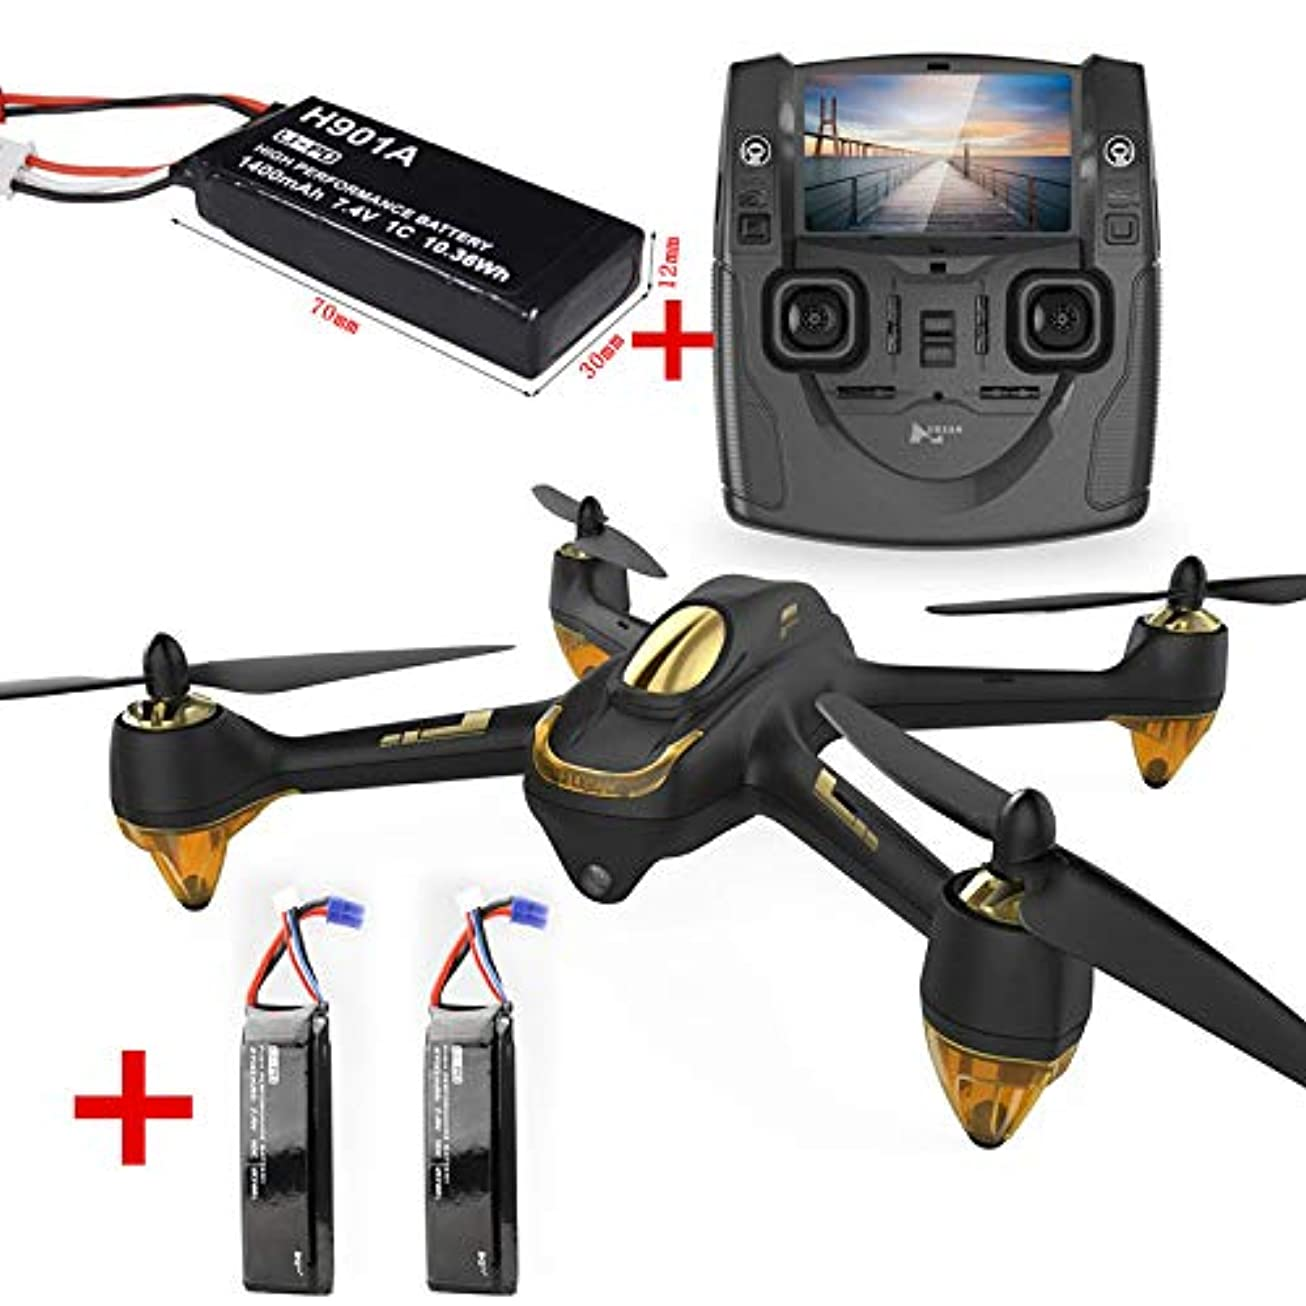 HUBSAN H501S X4 FPV RC Quadcopter Drone with Two of Battery rtjosatbhtvu4